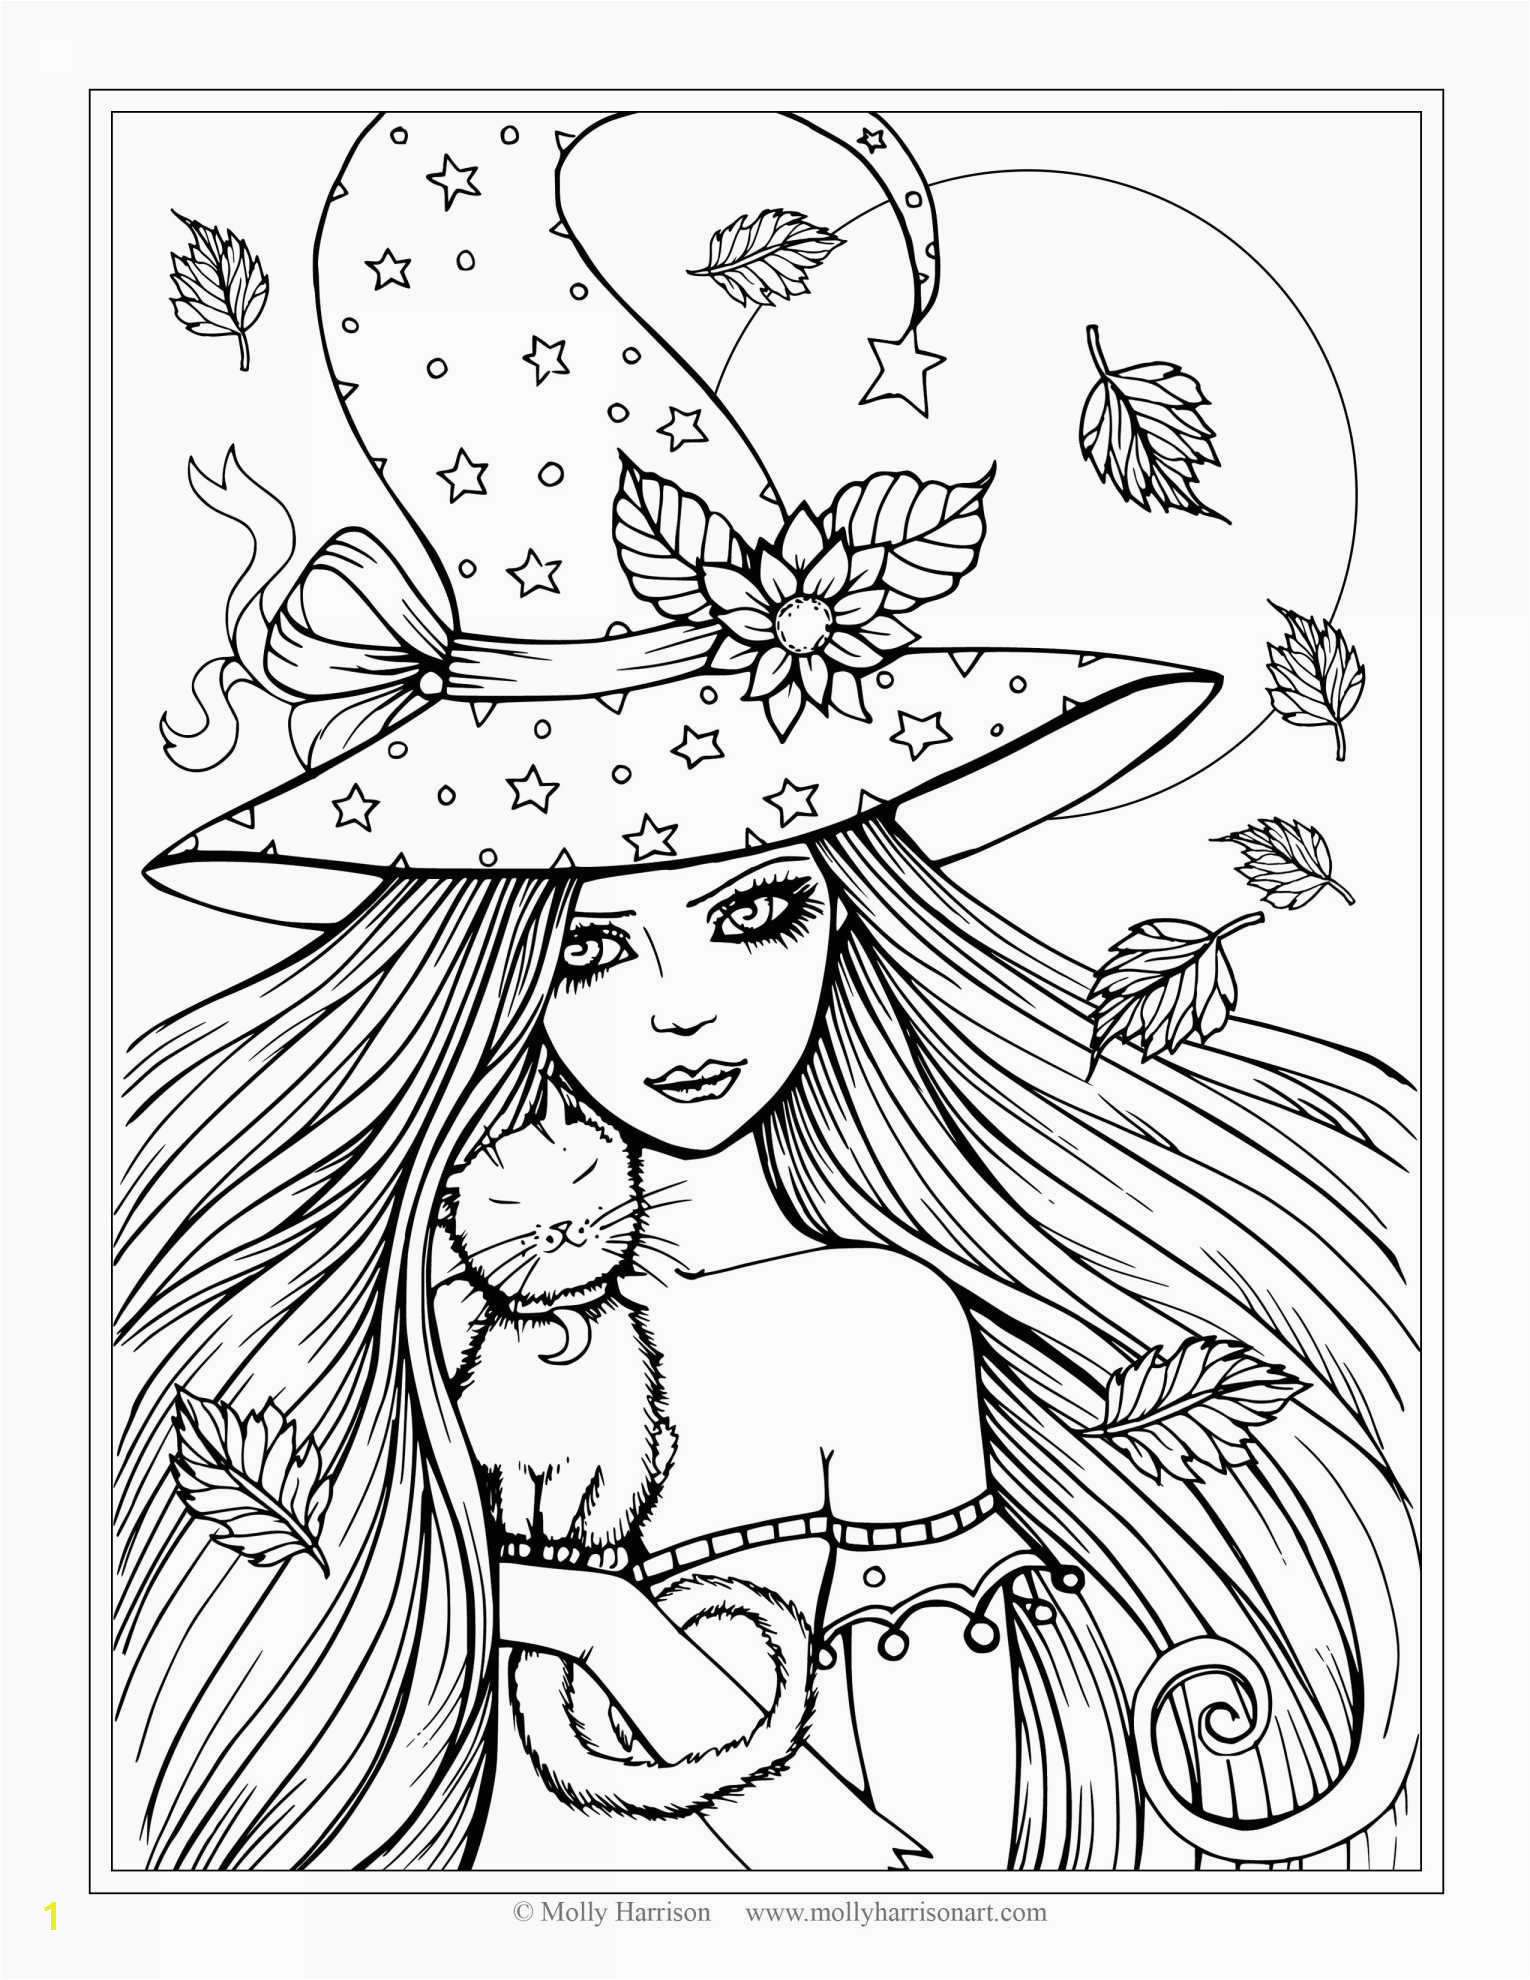 Disney Princess Tiana Coloring Pages to Print Disney Princesses Coloring Pages Gallery thephotosync